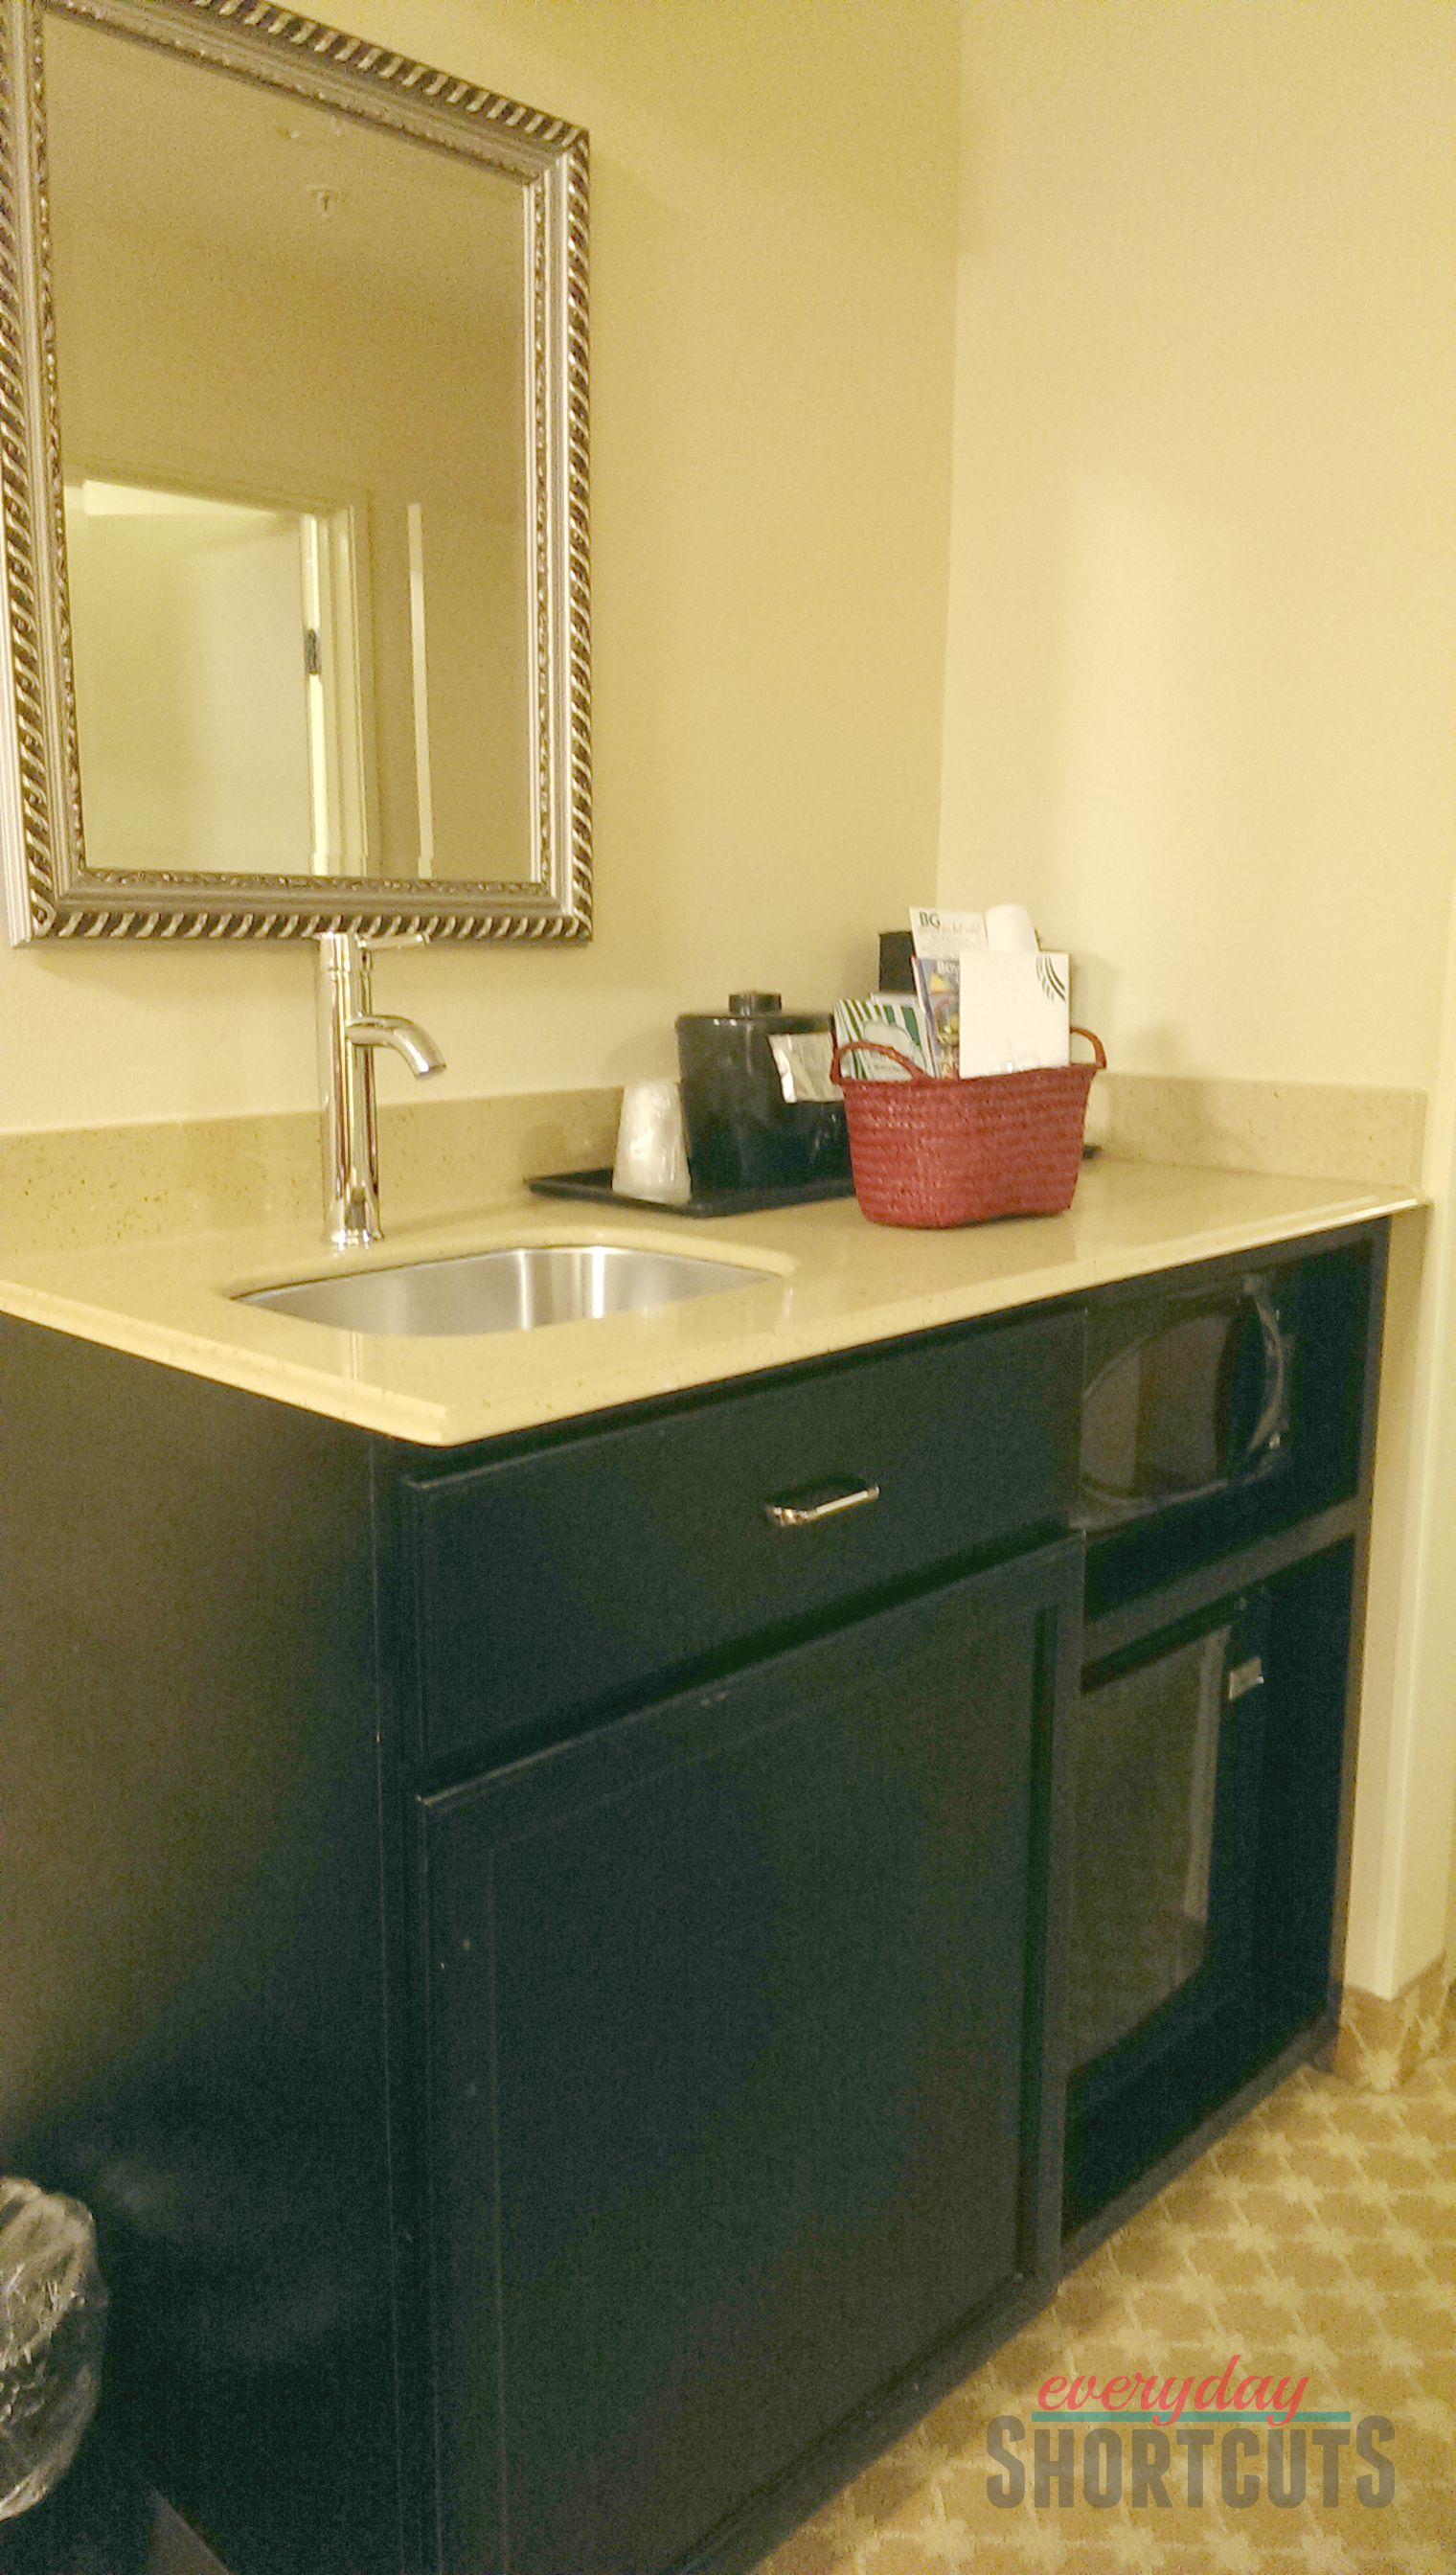 country inn & suites kitchenette